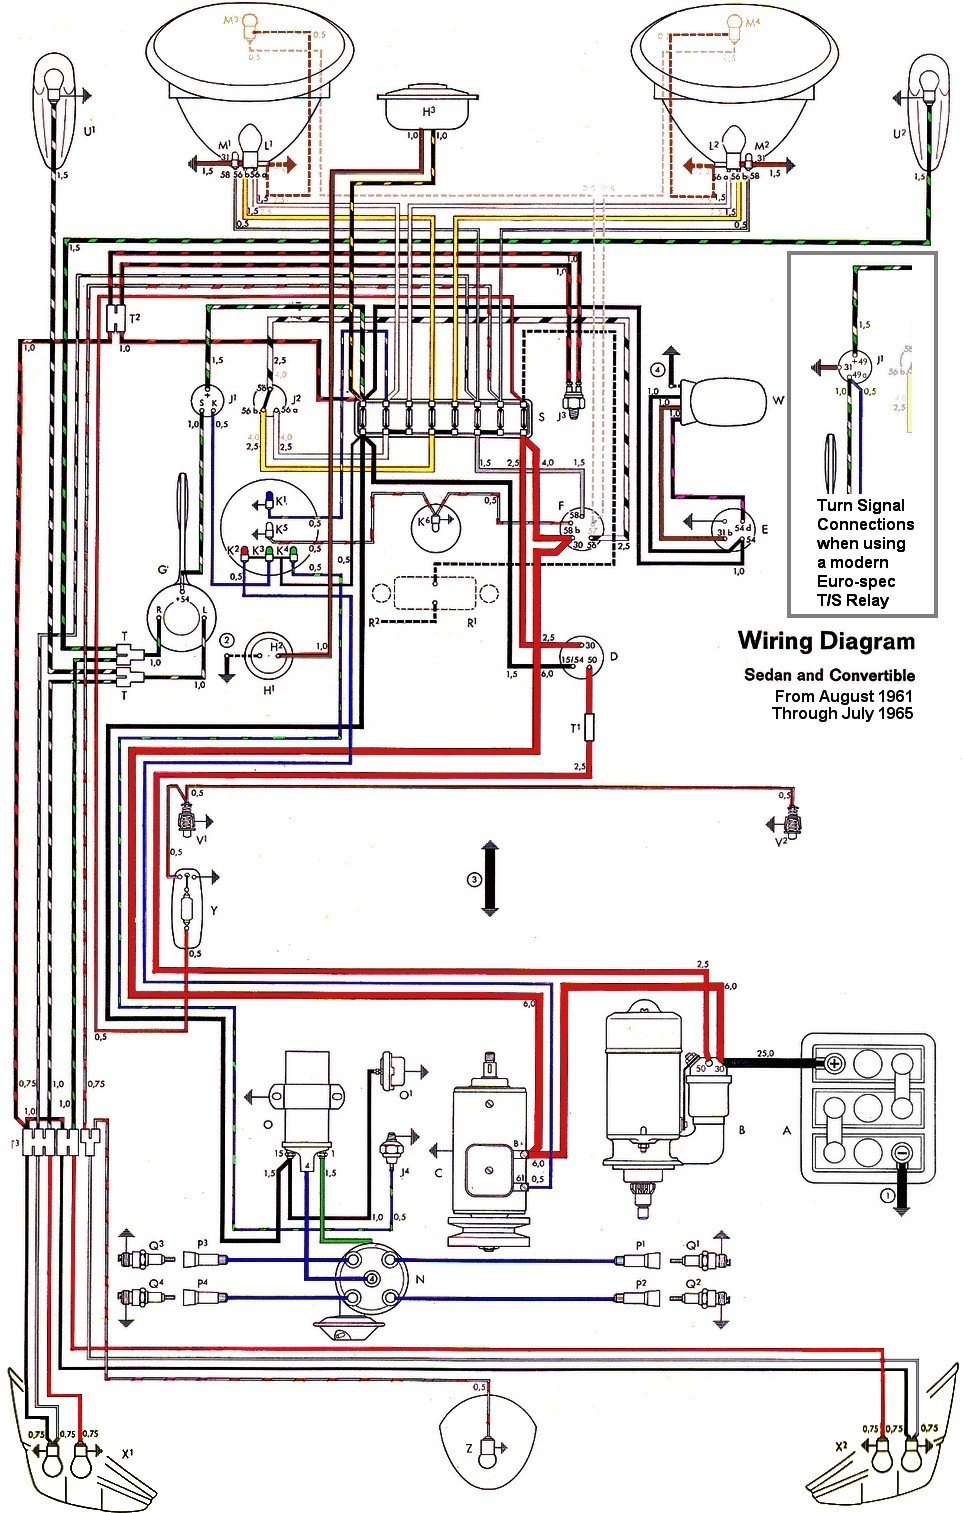 bug_62 65withinset thesamba com type 1 wiring diagrams vw wiring diagrams at gsmx.co